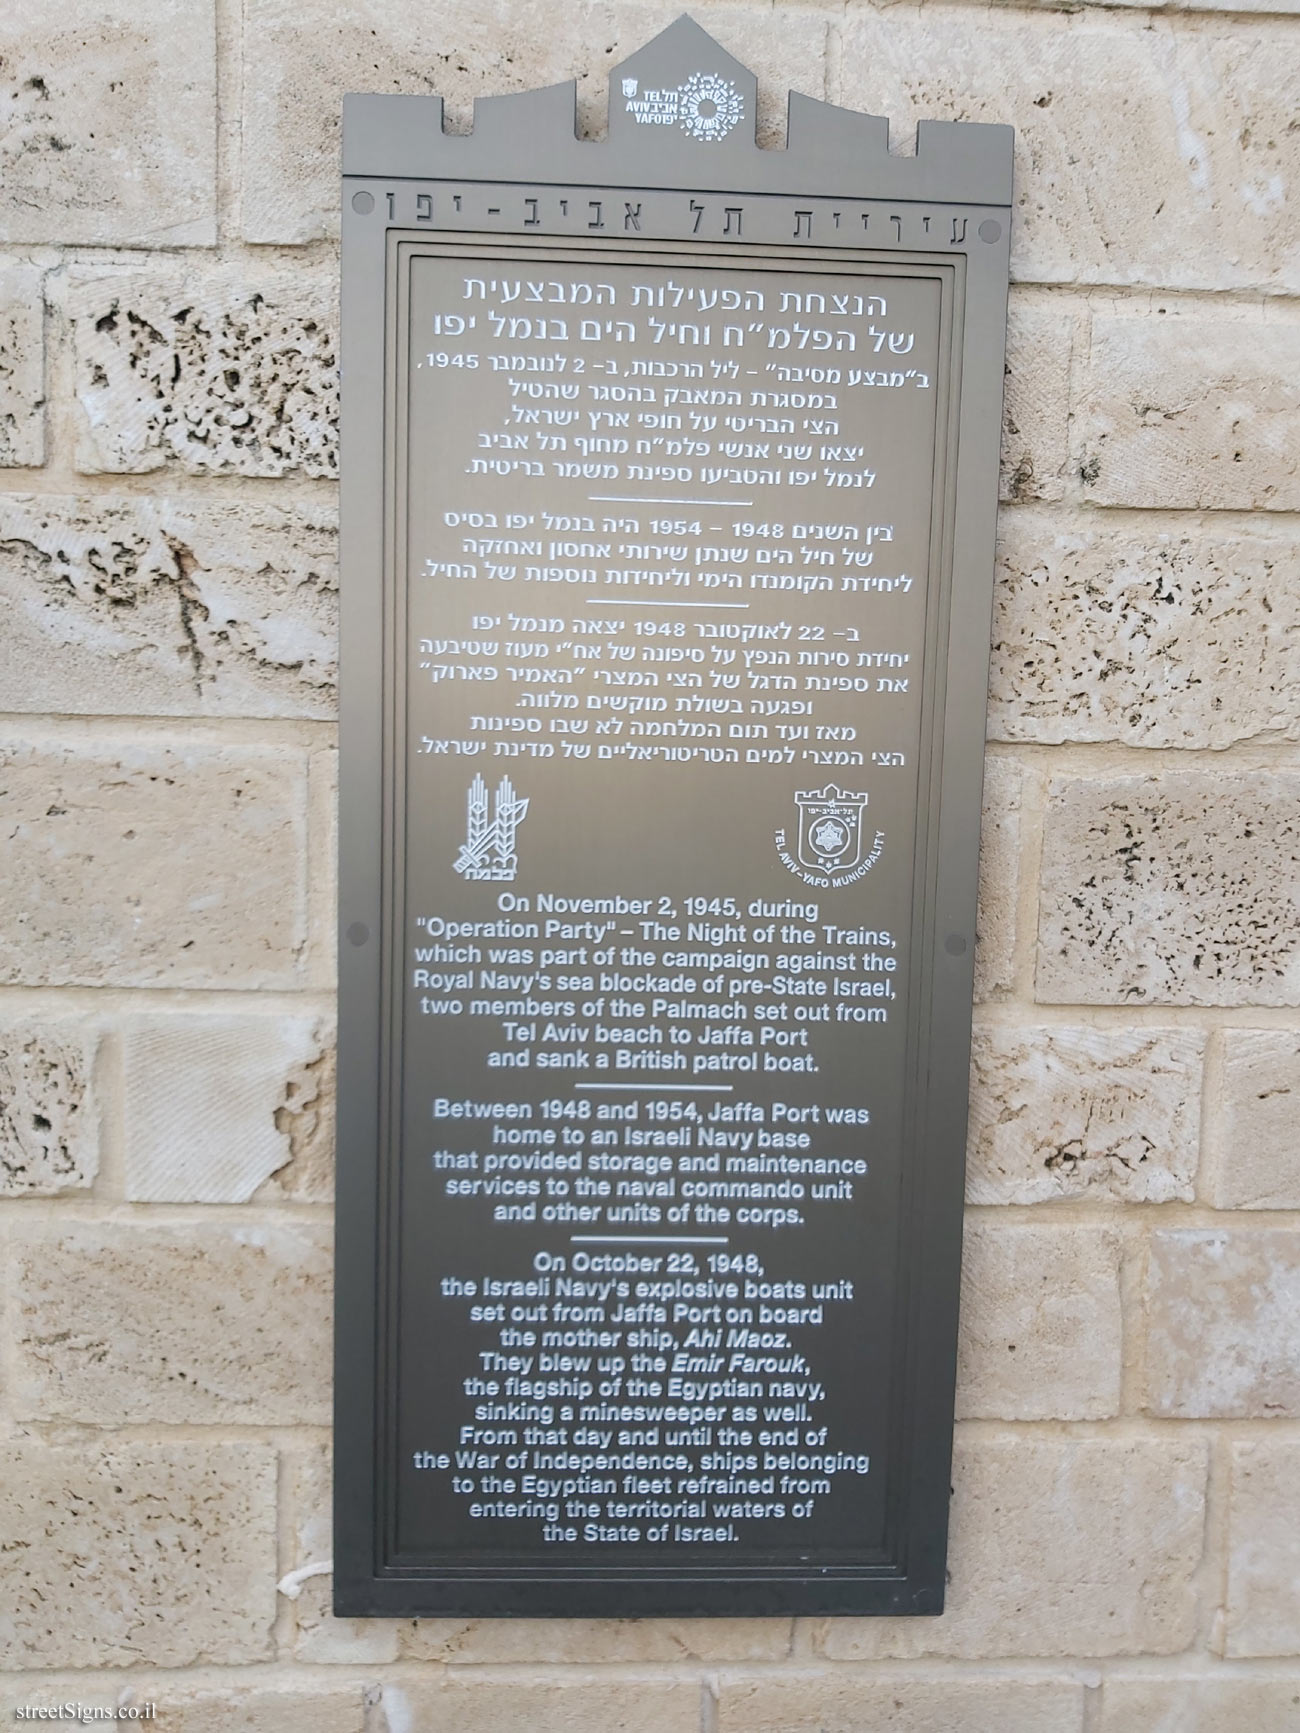 The Plamach and Navy operation in Jaffa - Commemoration of Underground Movements in Tel Aviv